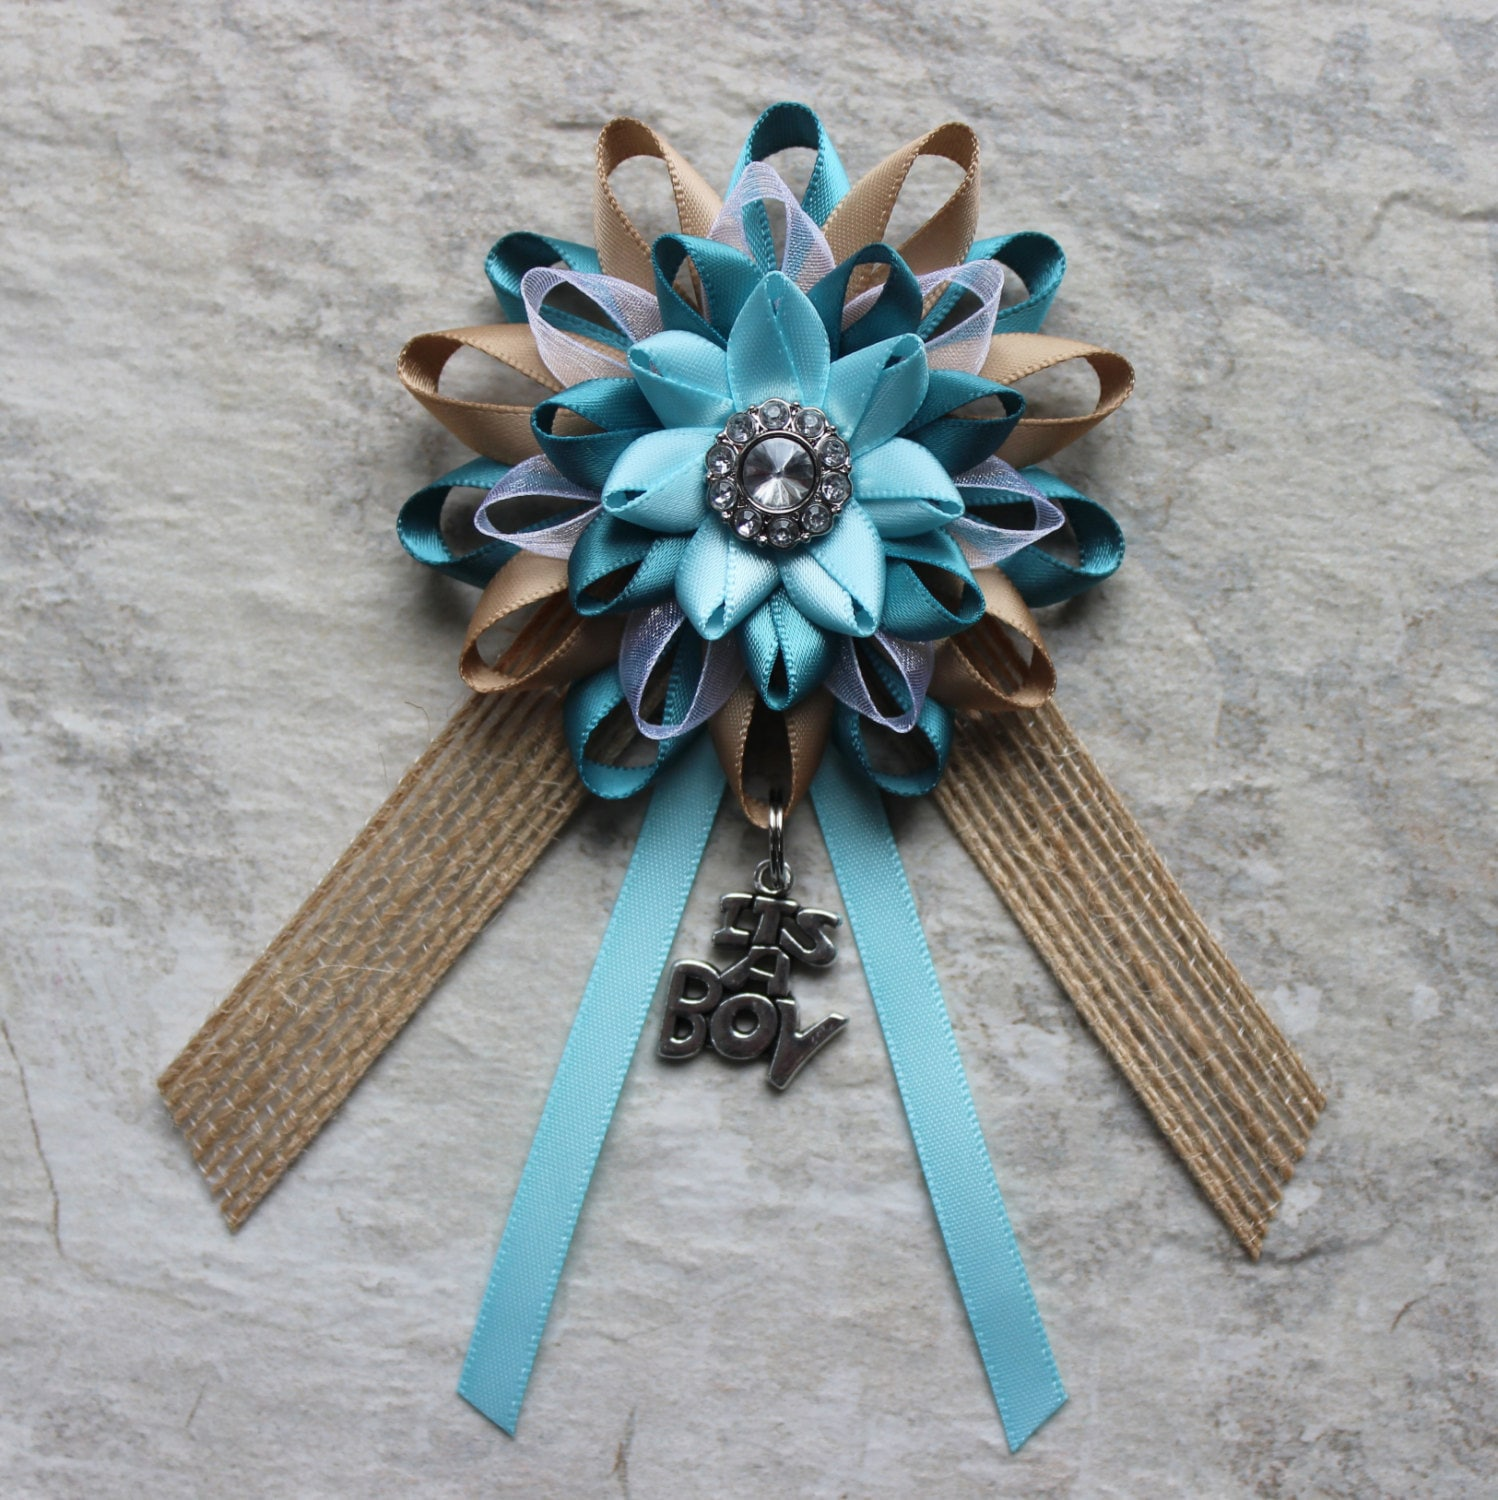 Rustic Baby Shower Decorations Boy Decor Blue Teal Burlap Pin Corsage